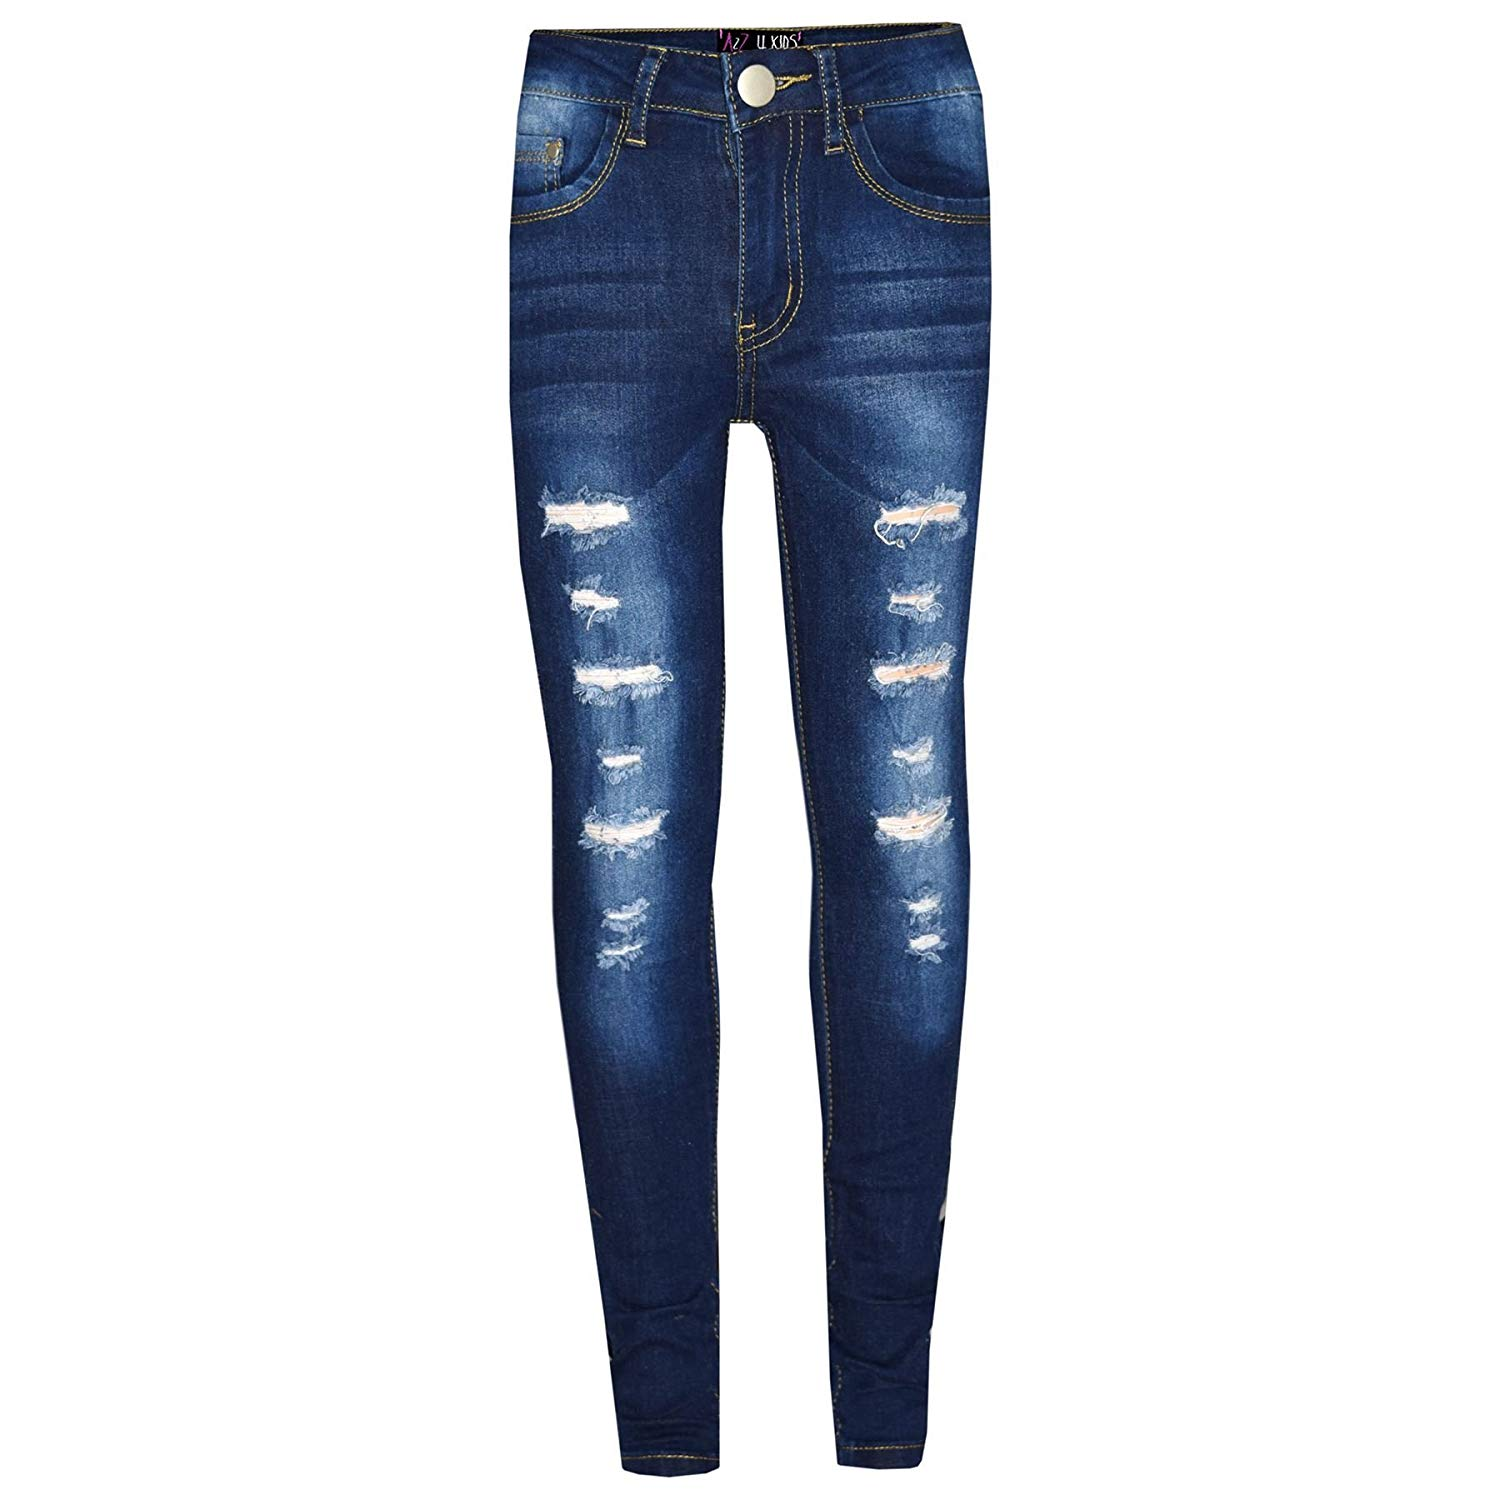 bb952b08e639f Get Quotations · Kids Girls Skinny Jeans Denim Ripped Stretchy Pants  Jeggings New Age 3-13 Years